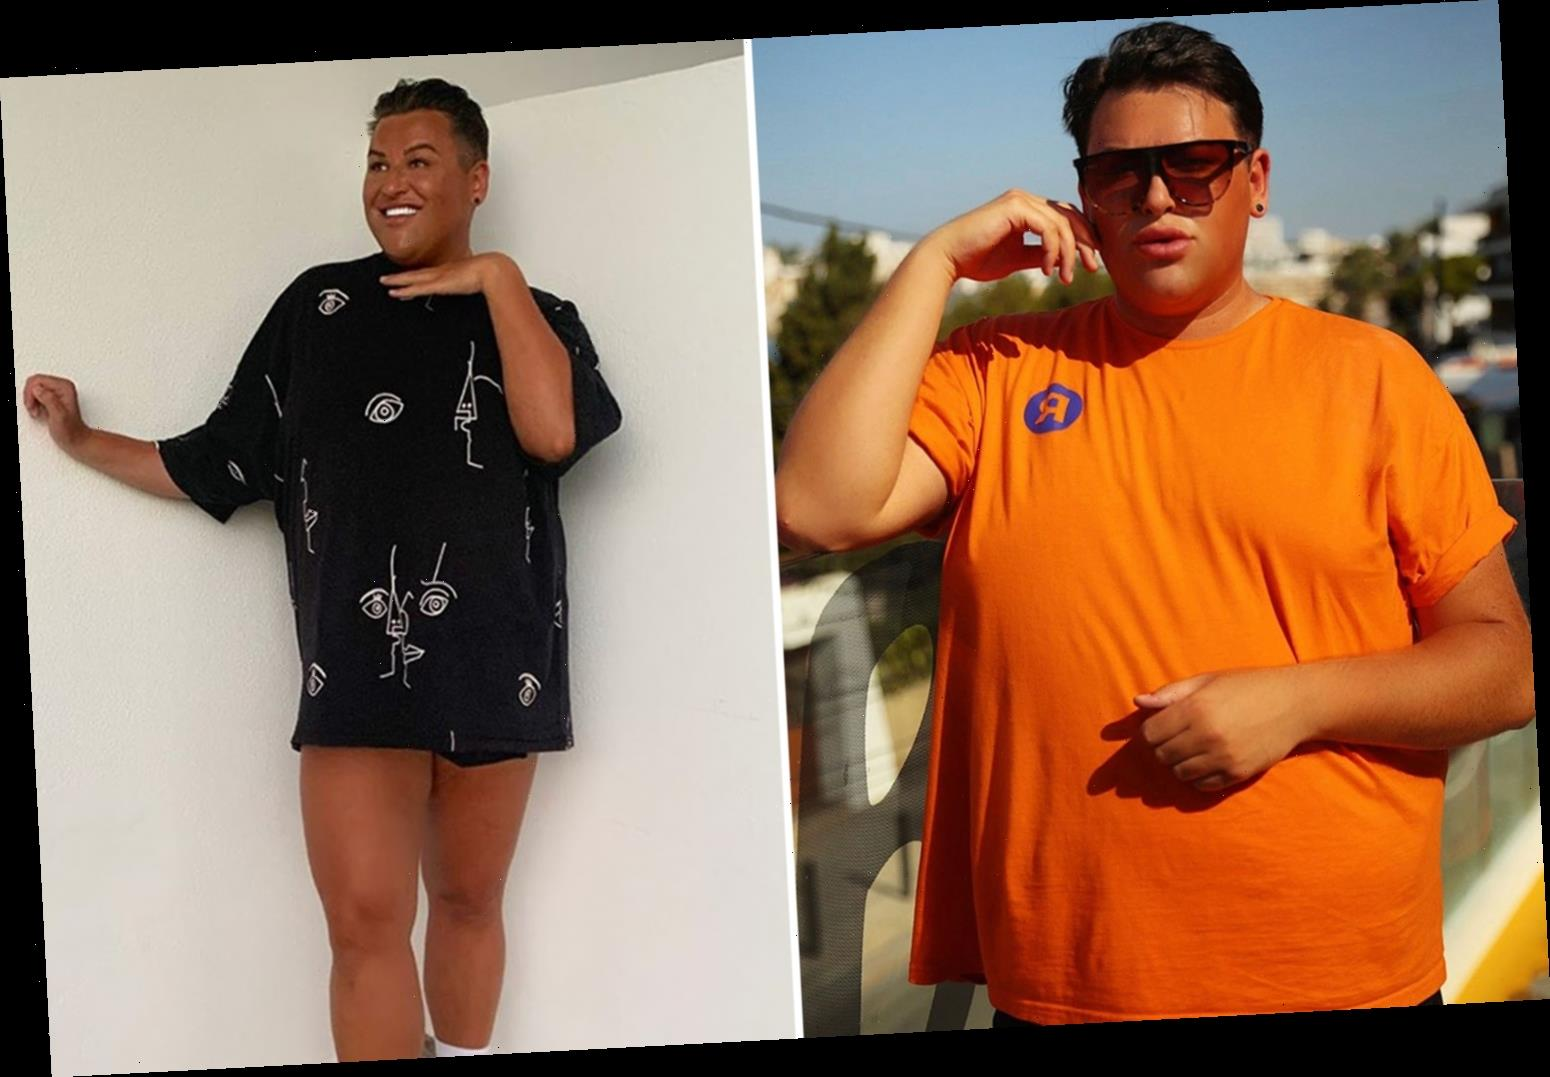 Ibiza Weekender's David Potts reveals two and a half stone weight loss after working out so hard he 'almost throws up'